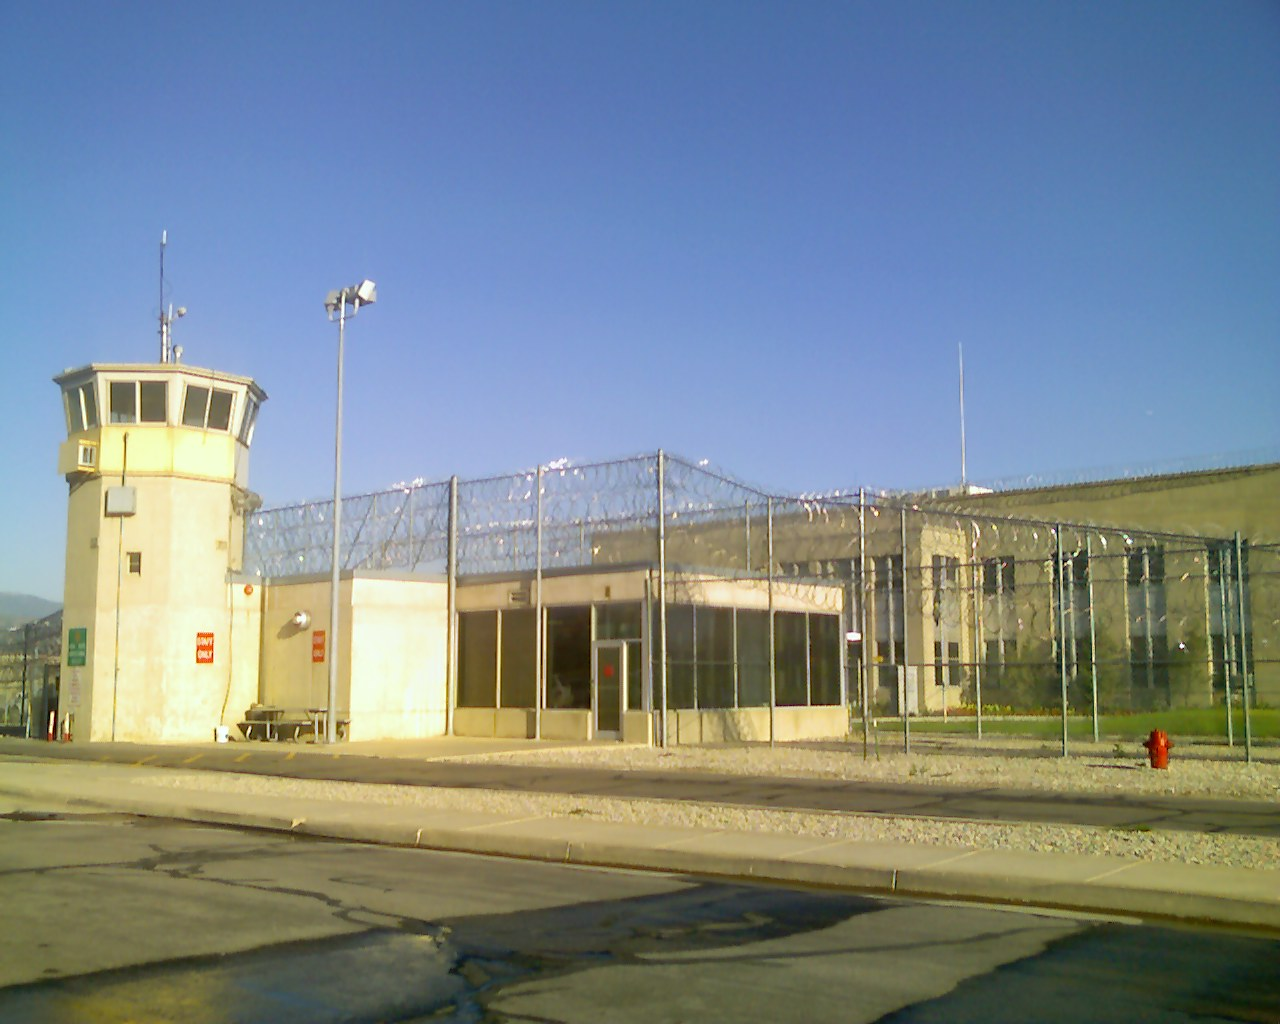 Prison, http://commons.wikimedia.org/wiki/File:Utah_State_Prison_Wasatch_Facility.jpg